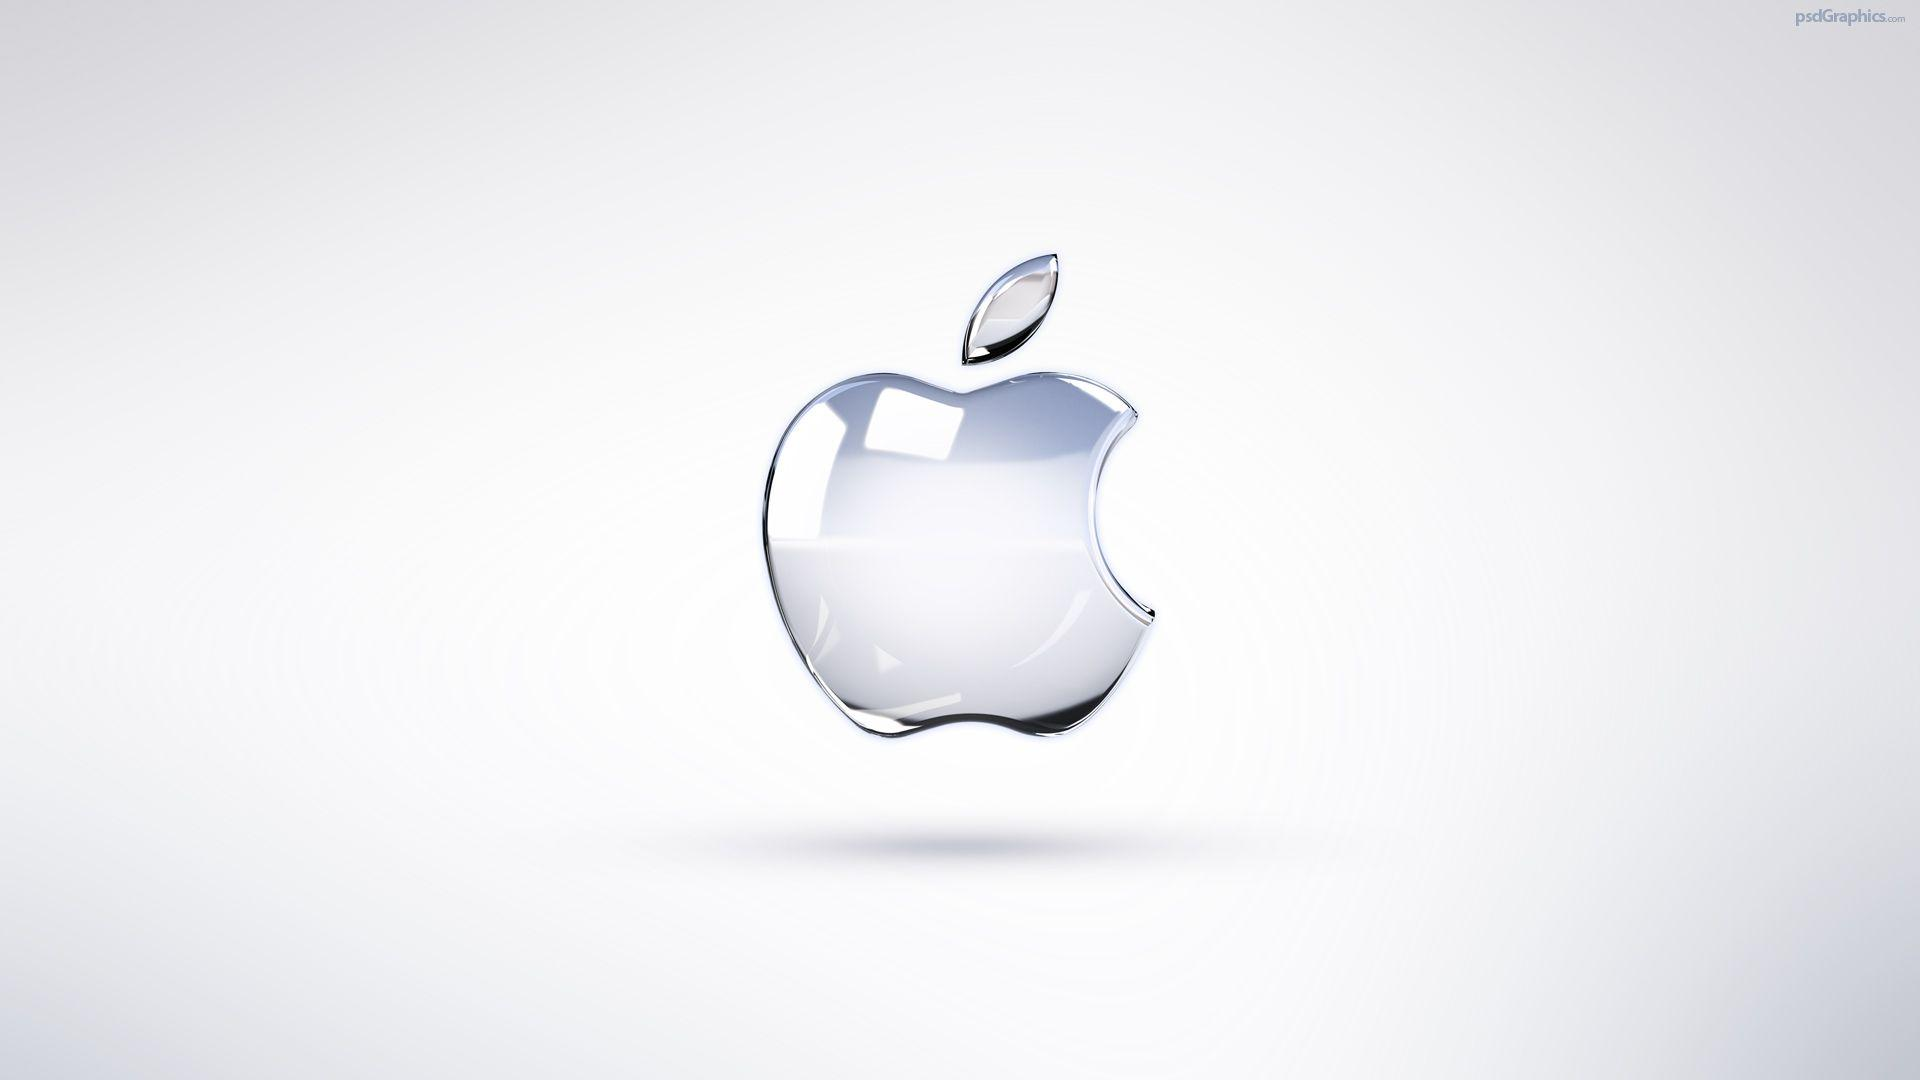 Apple Wallpapers Hd 1080p Wallpaper Cave